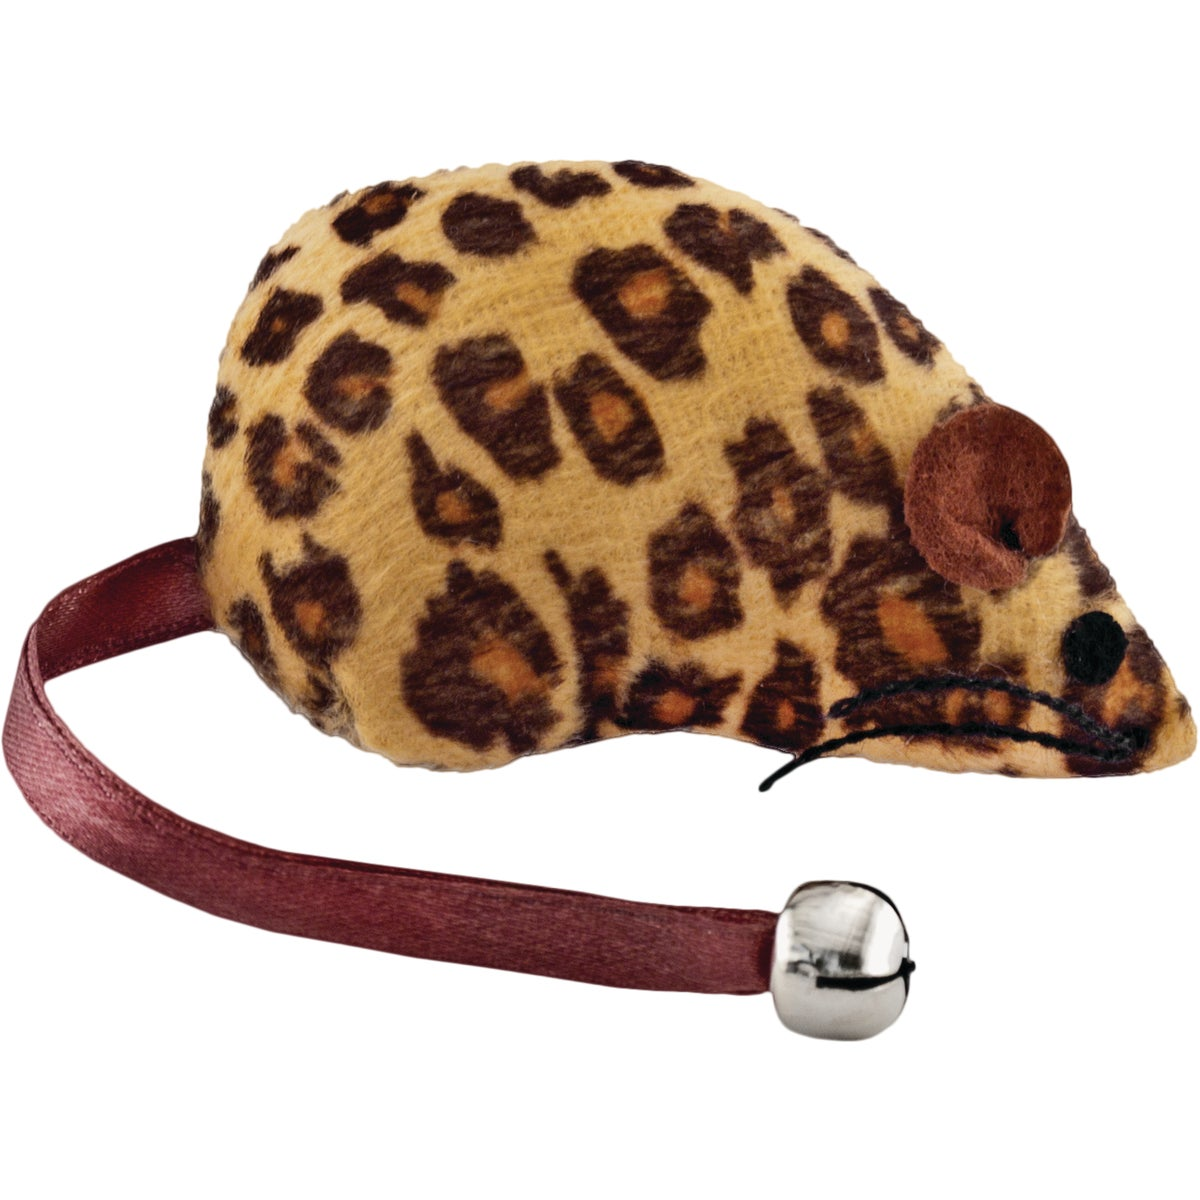 MOUSE W/CATNIP CAT TOY - 32006 by Westminster Pet